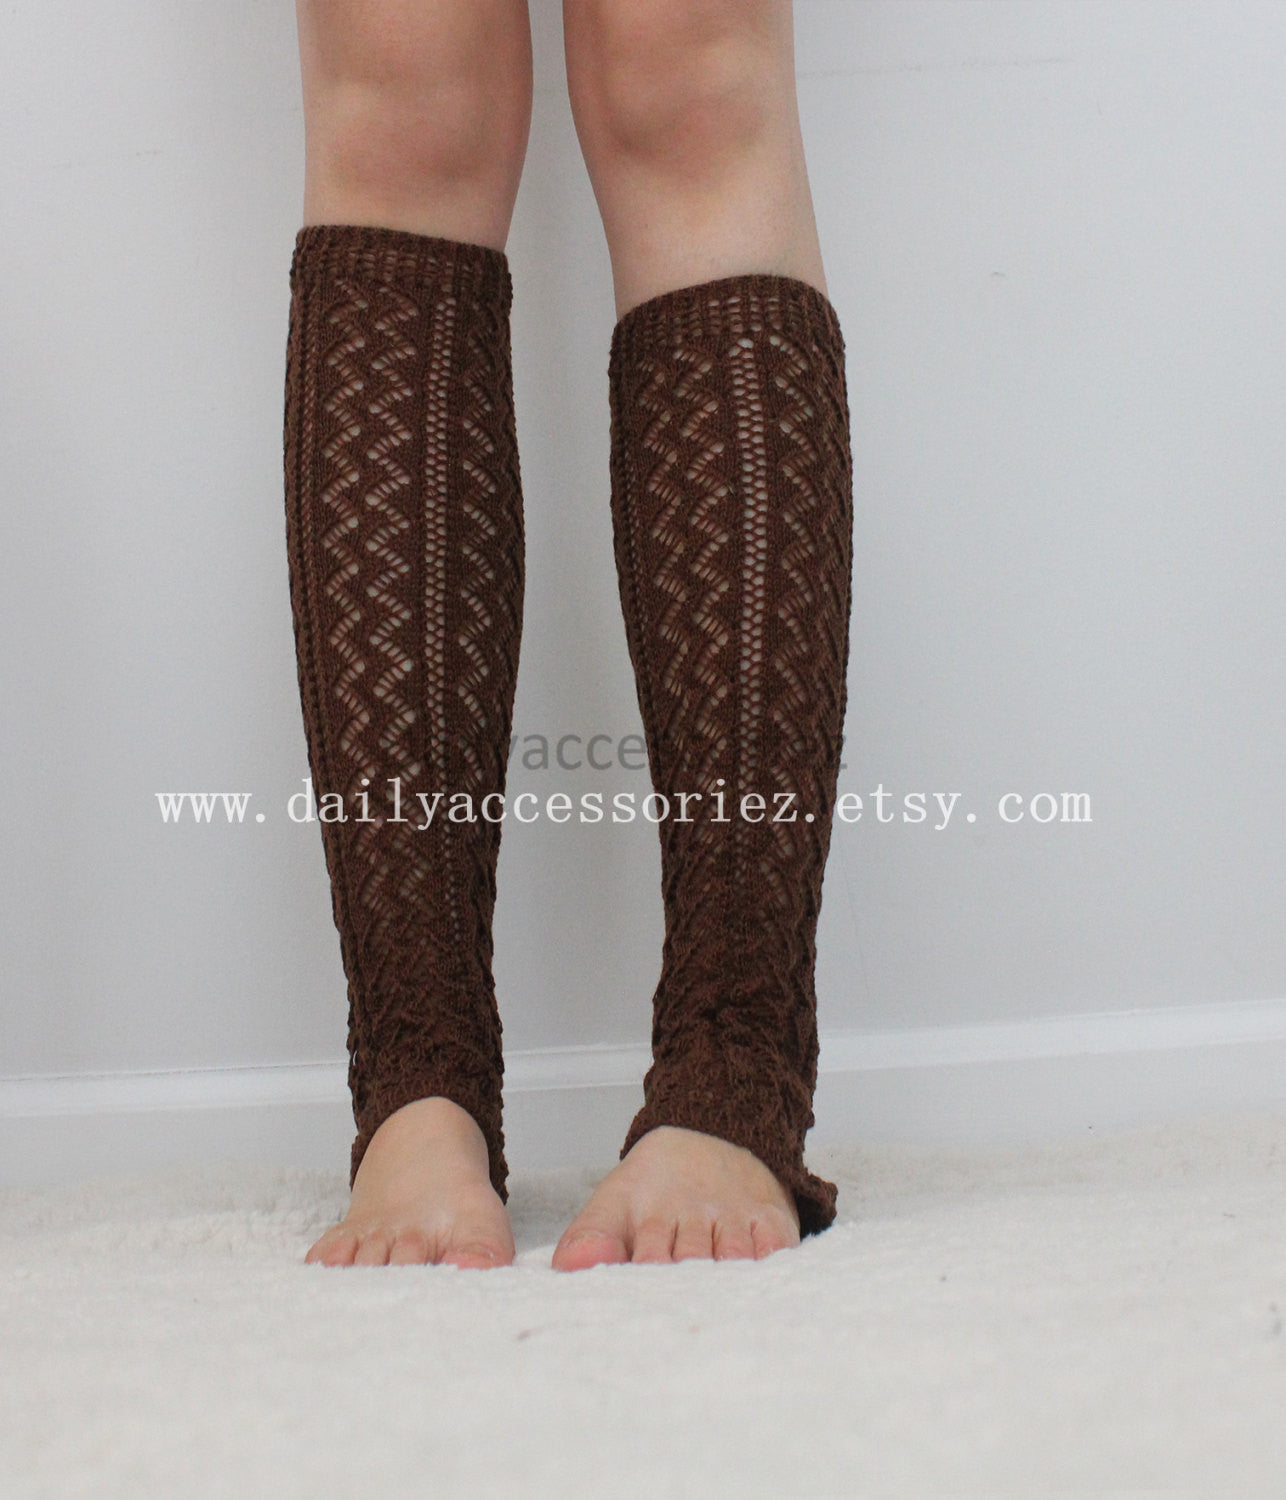 Brown leg warmers - Bean Concept - Etsy